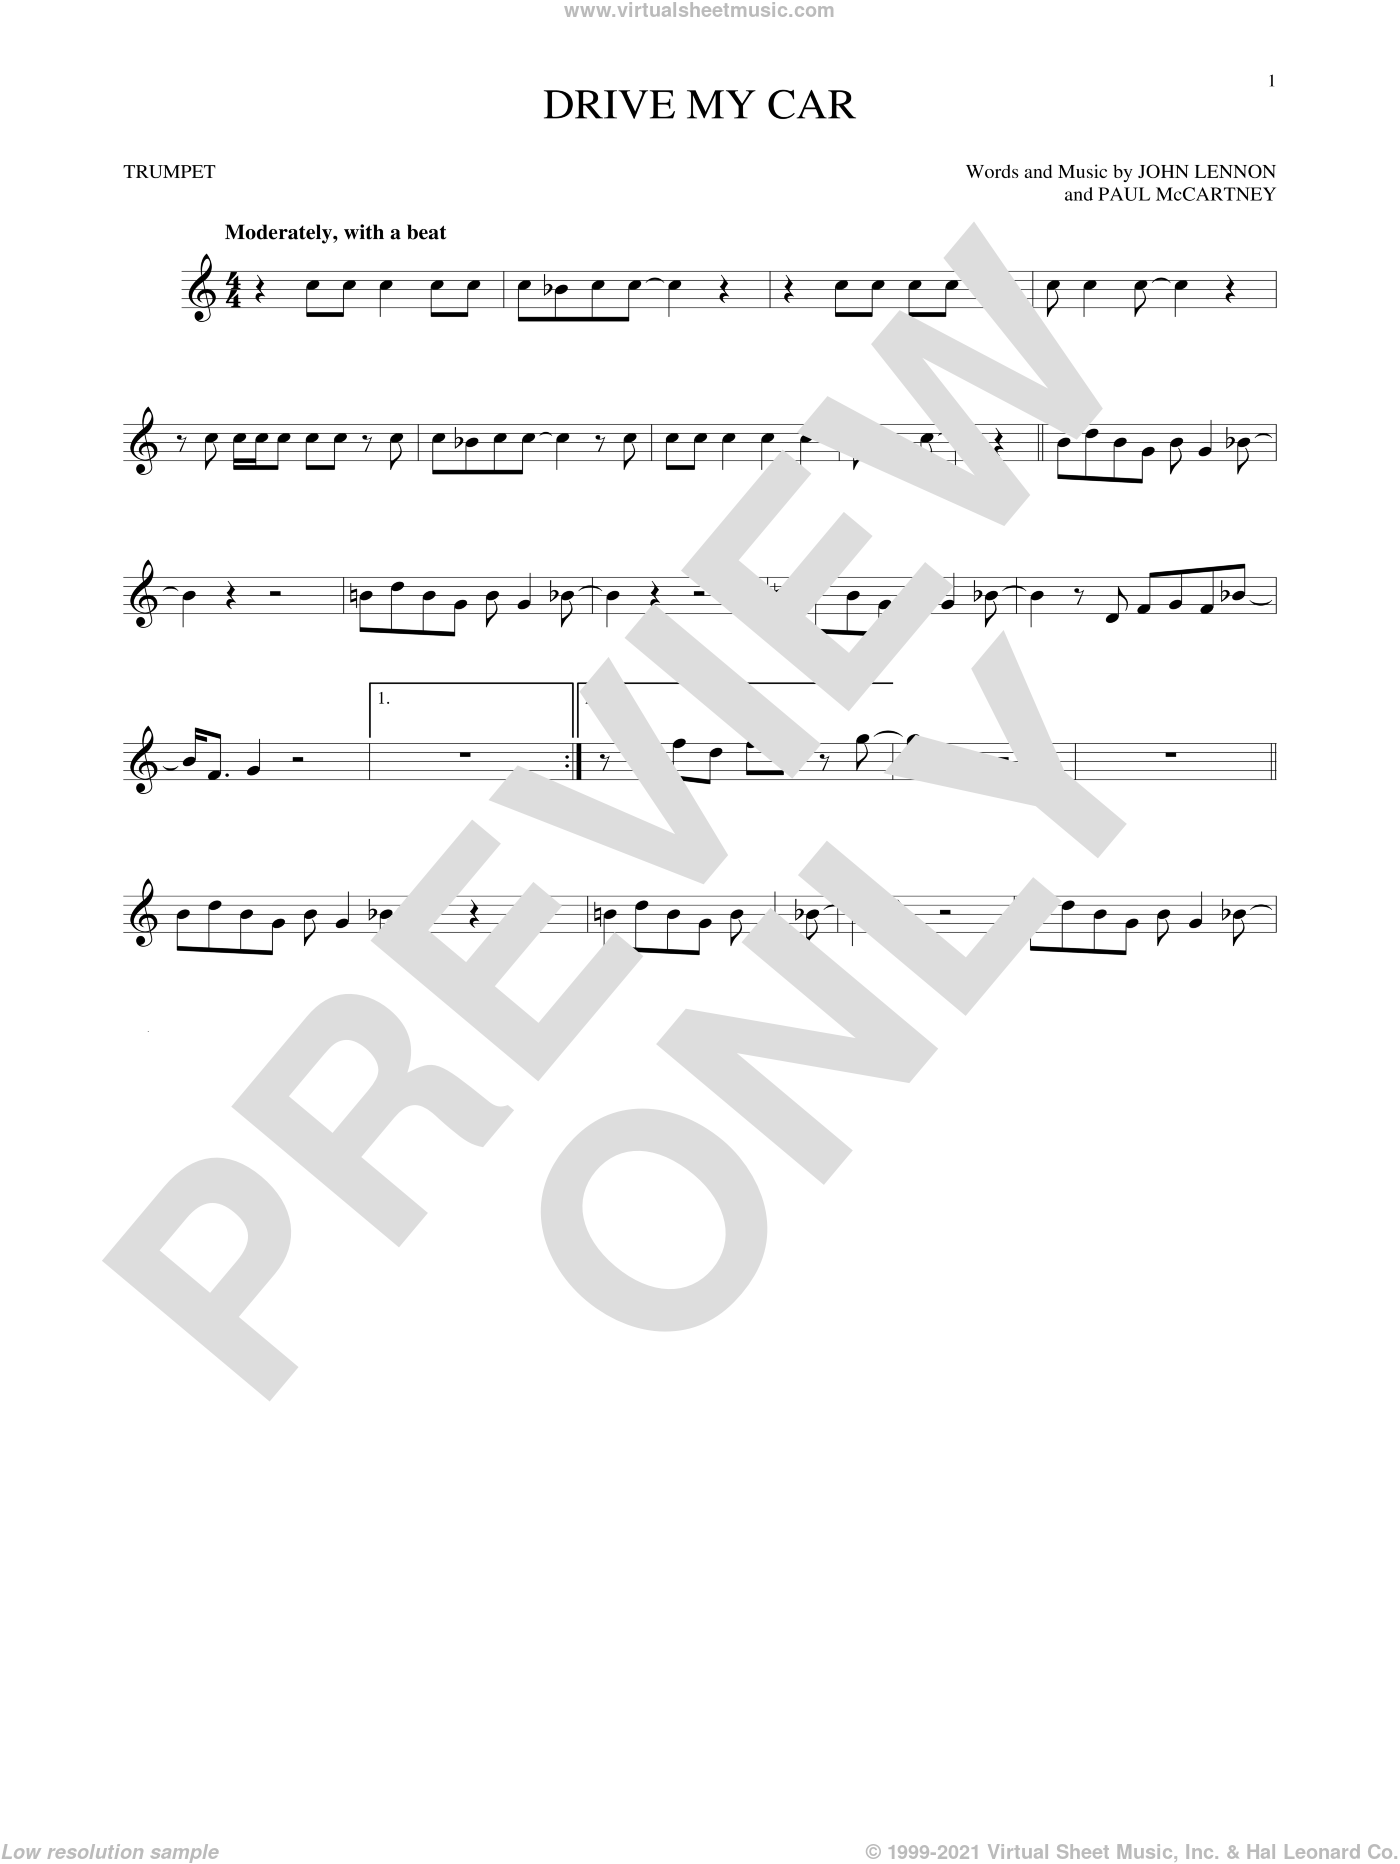 Drive My Car sheet music for trumpet solo by The Beatles, John Lennon and Paul McCartney, intermediate skill level